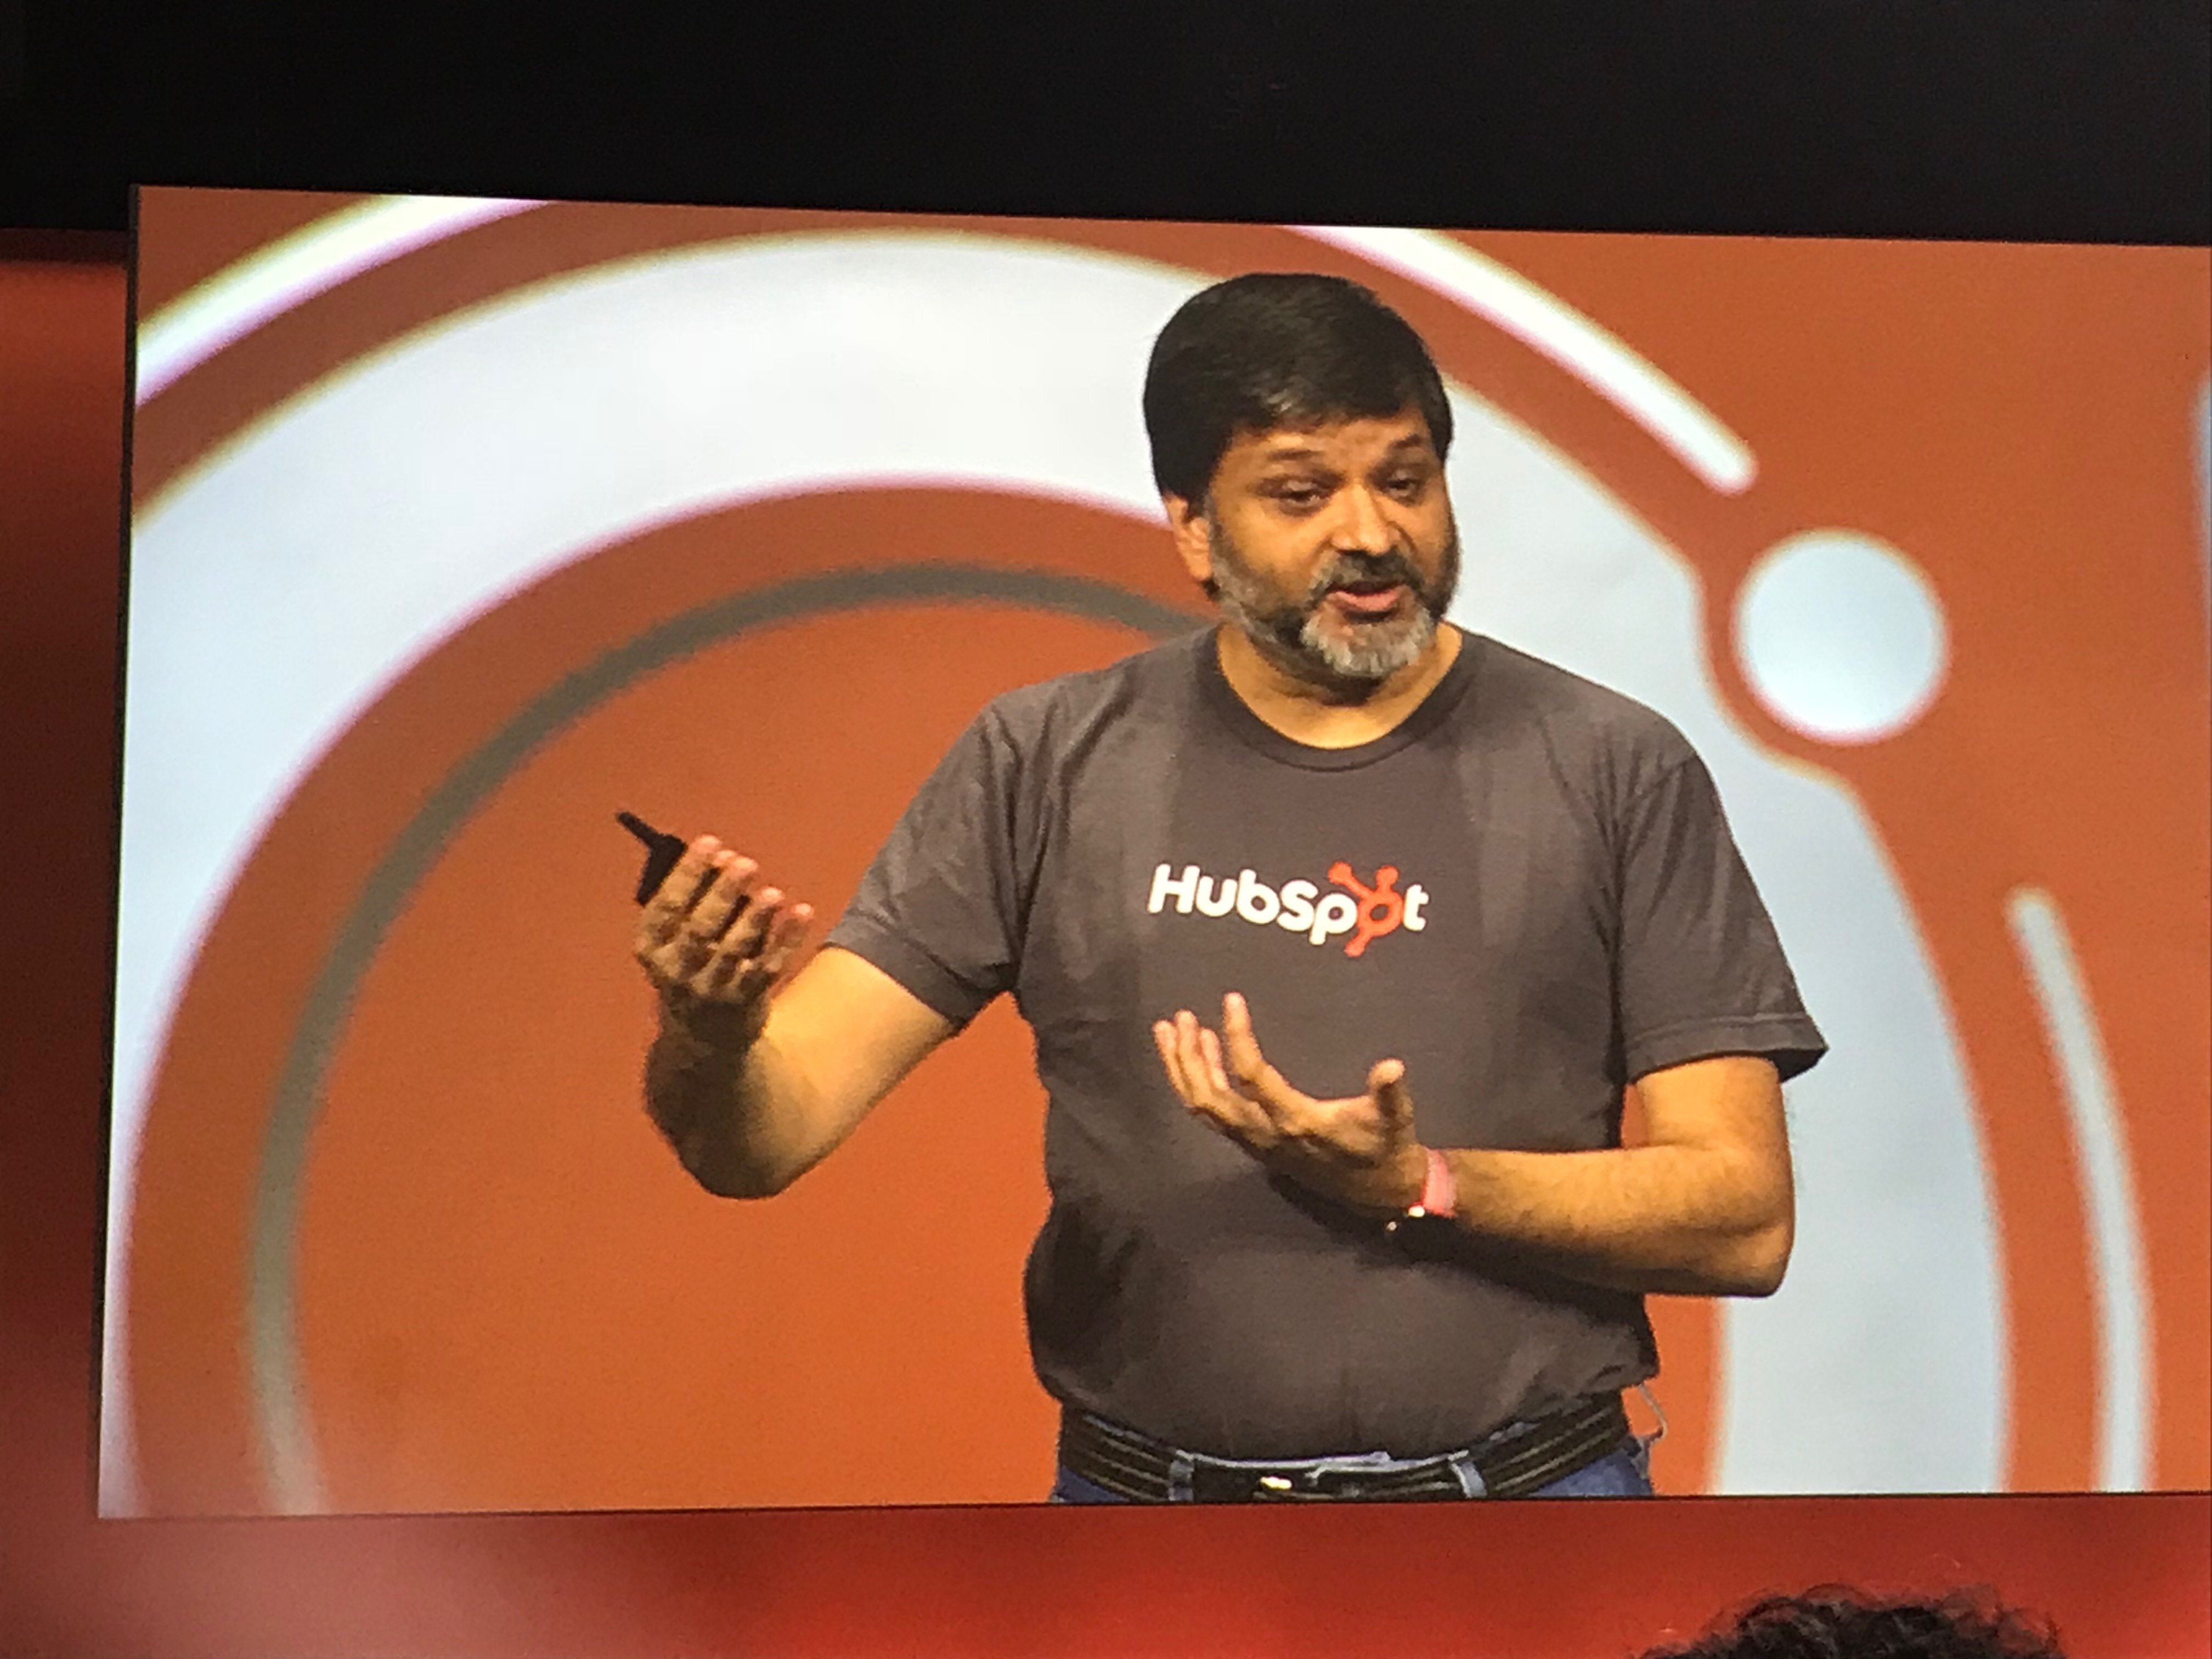 HubSpot CTO and Founder, Dharmesh Shah